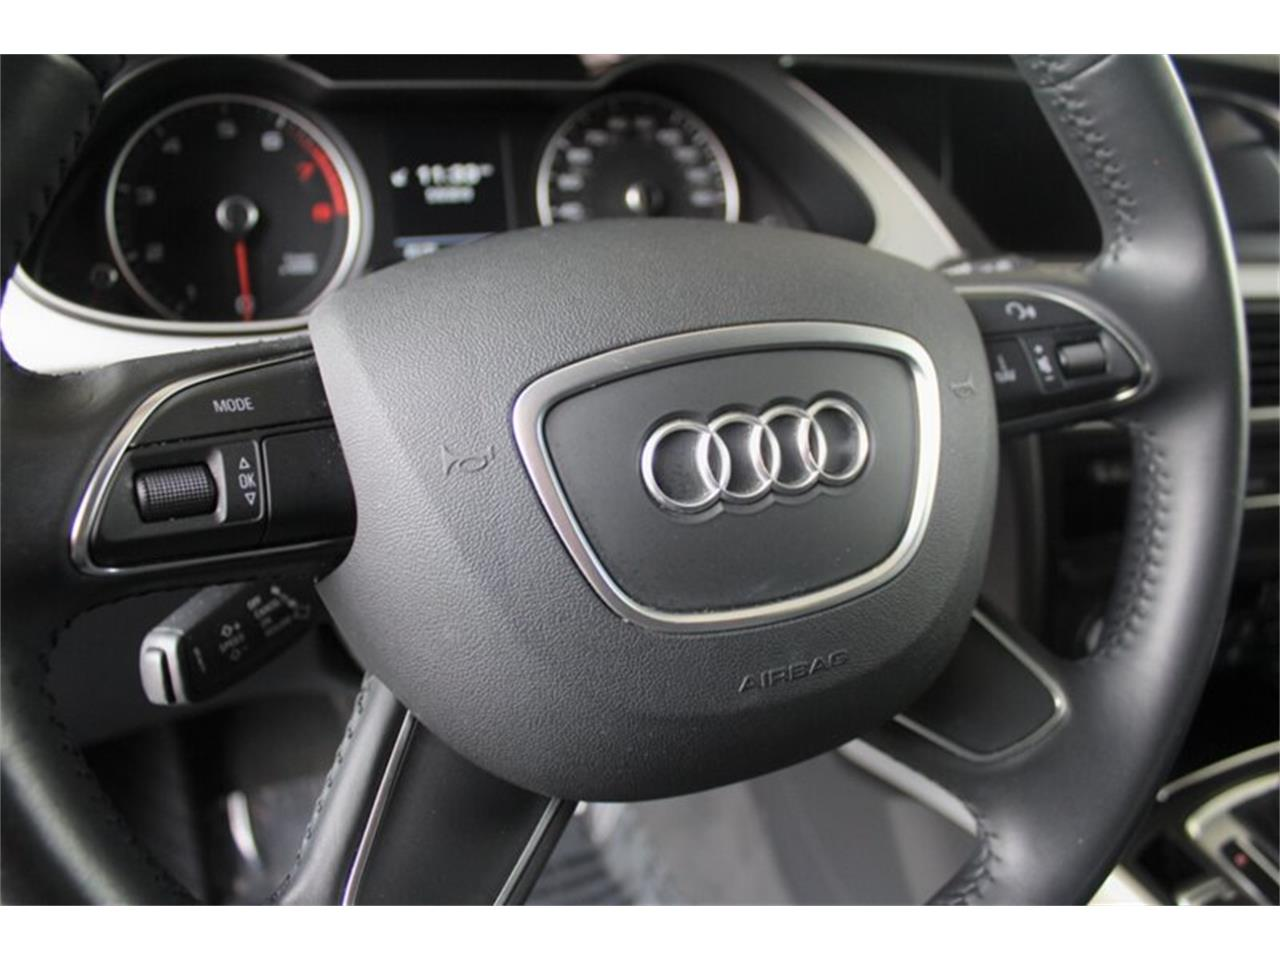 2015 Audi Allroad for sale in Sherman Oaks, CA – photo 22